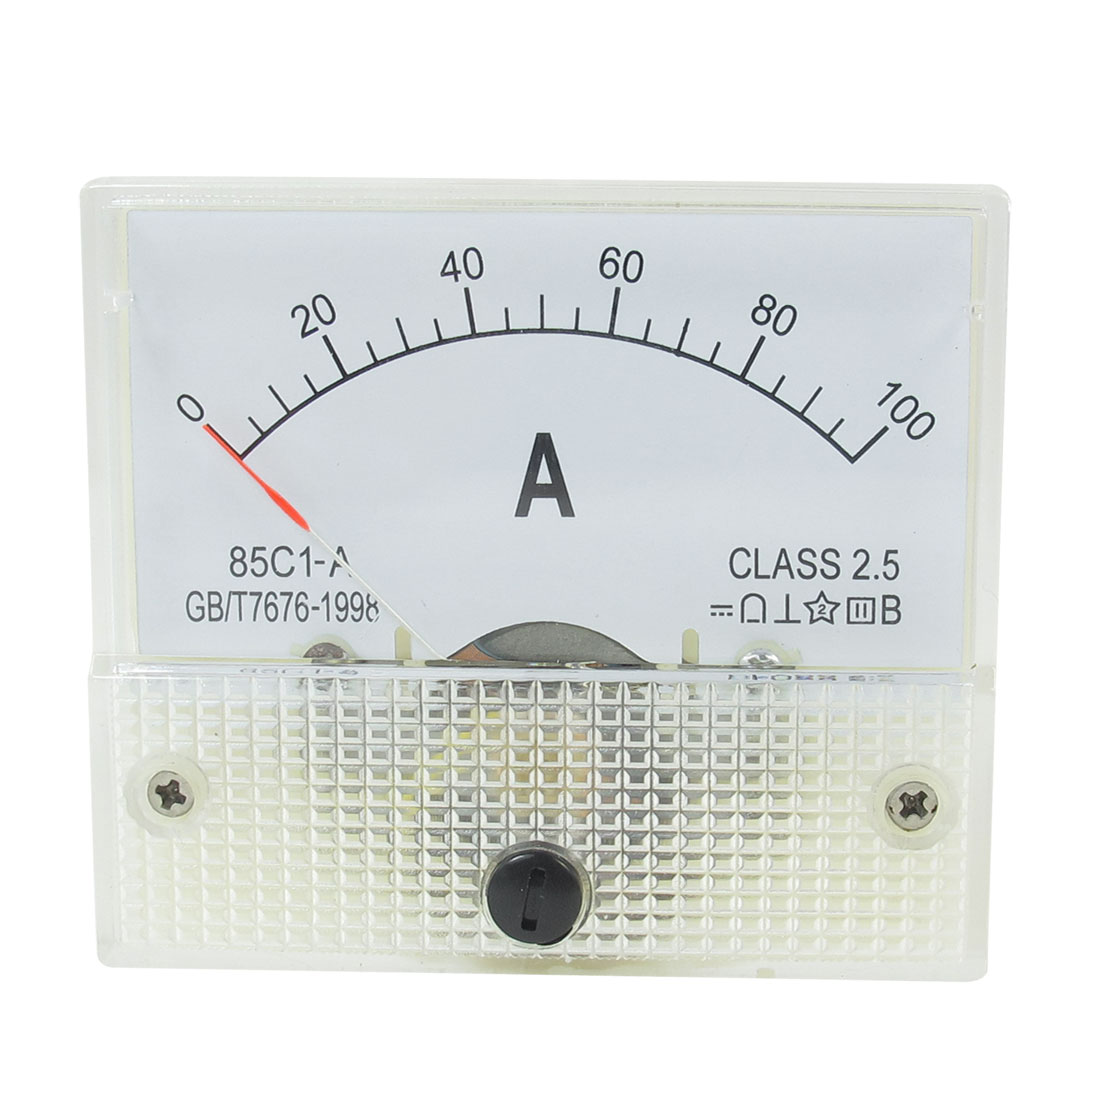 Plastic Housing DC 0-100A Range Analog Panel Meter Amperemeter 85C1-A